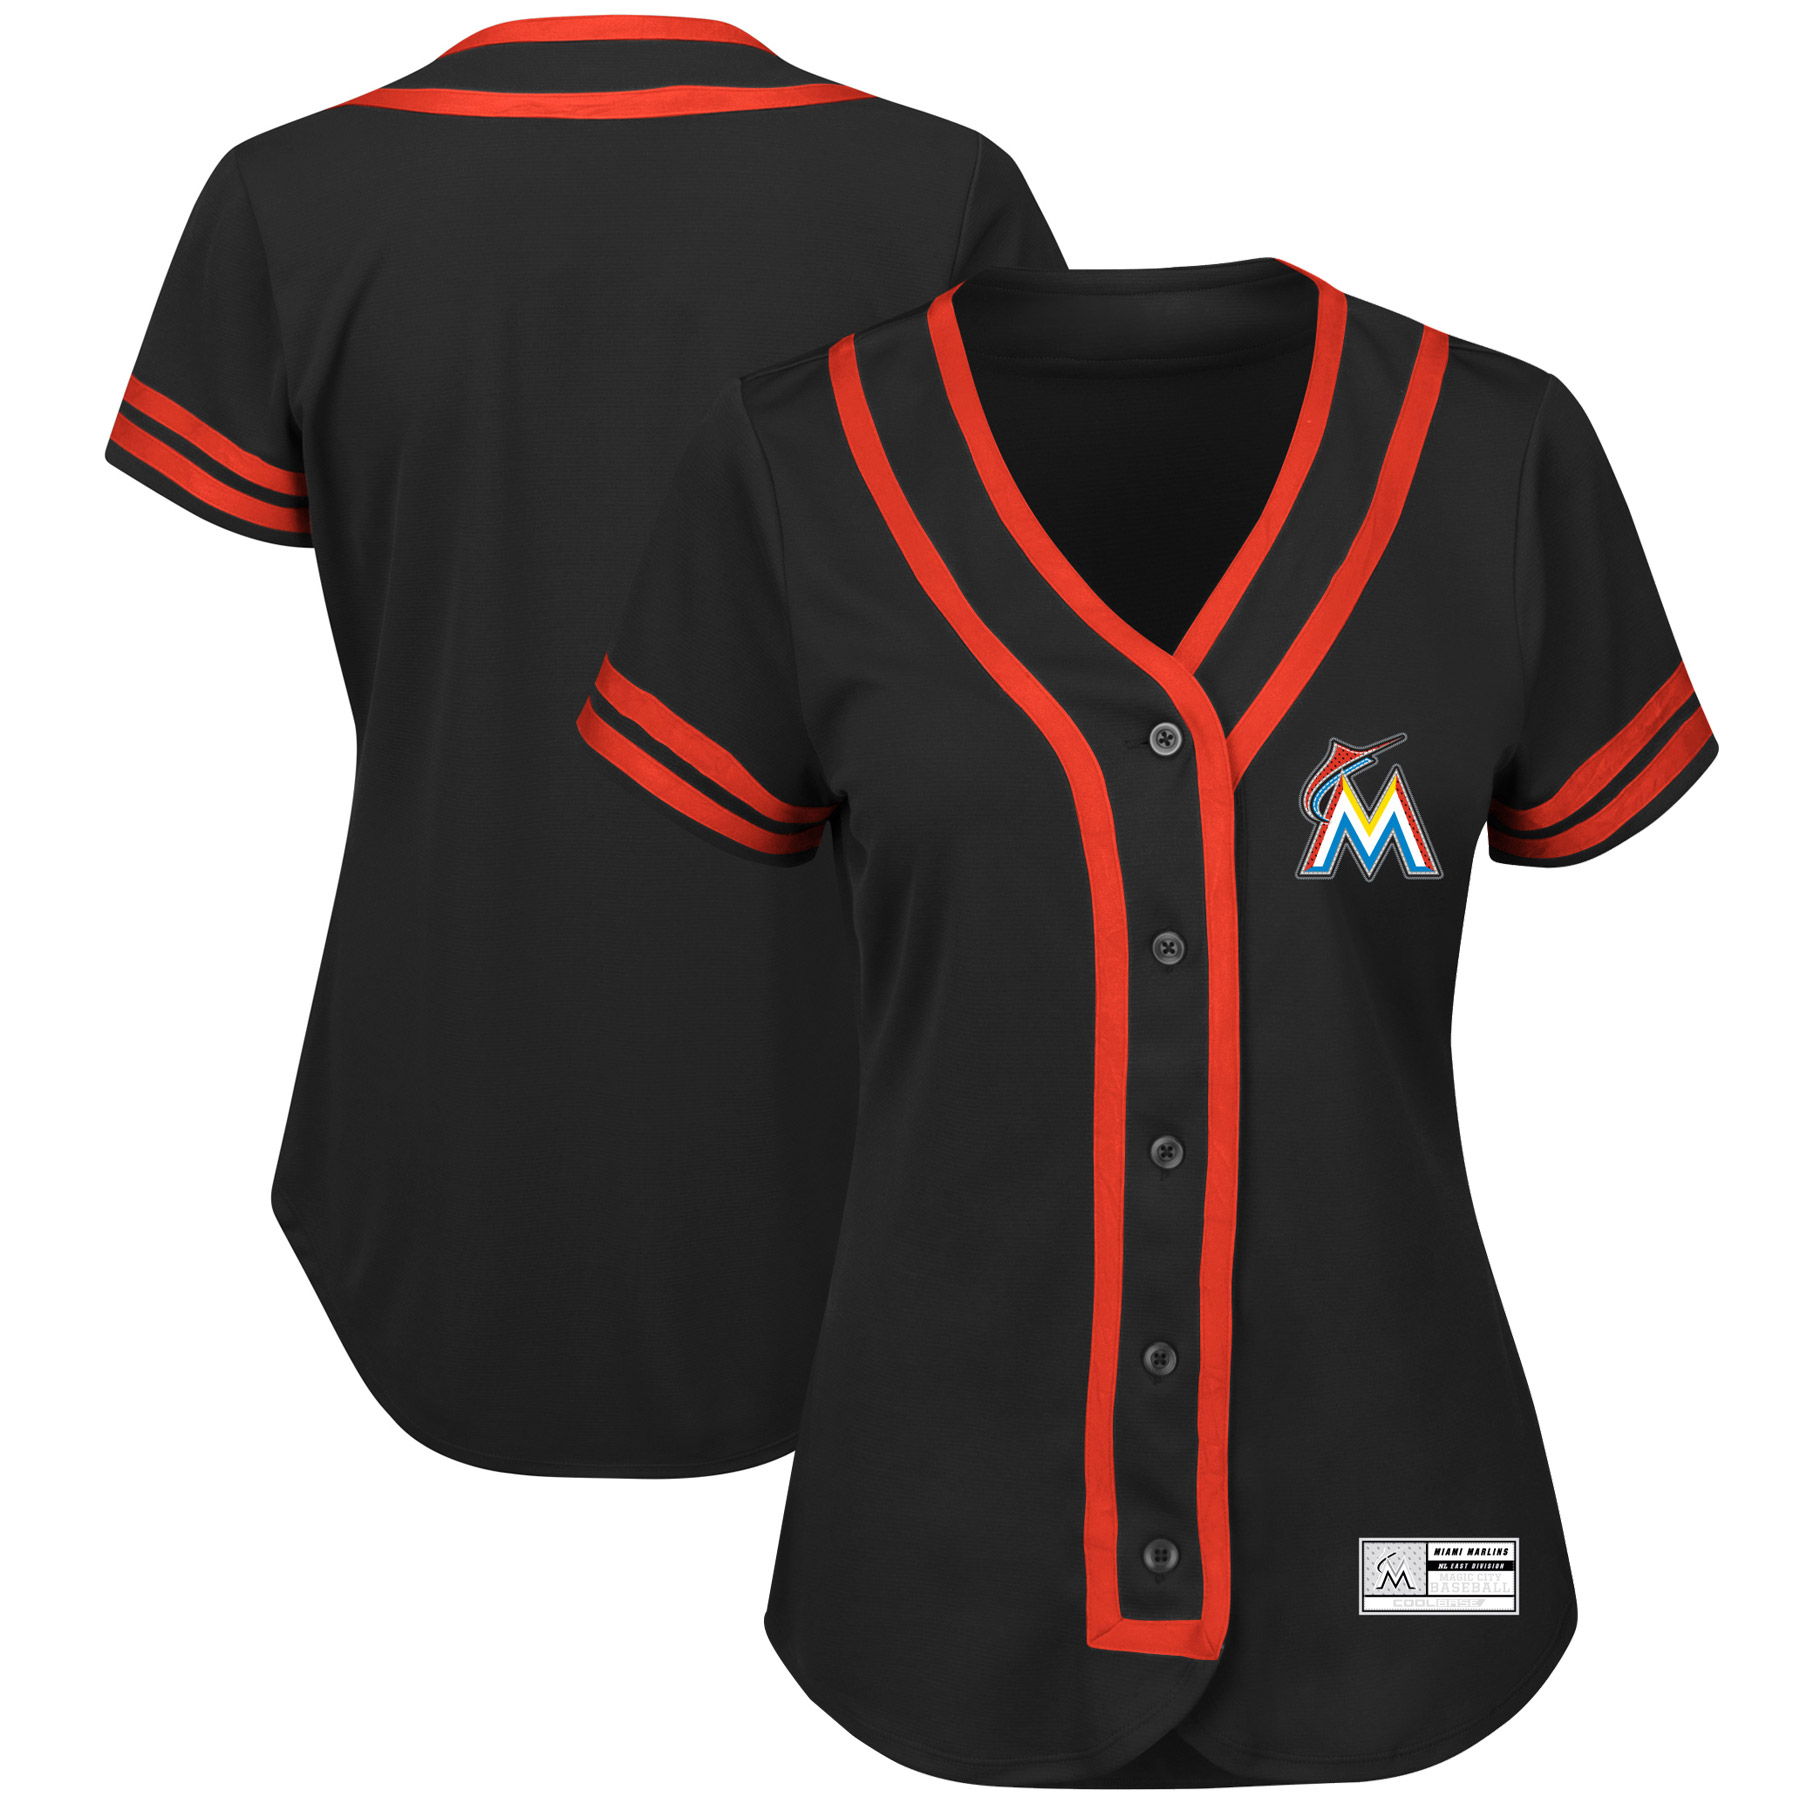 Miami Marlins Majestic Women's Fashion Absolute Victory Cool Base Team Jersey Black Orange by MAJESTIC LSG